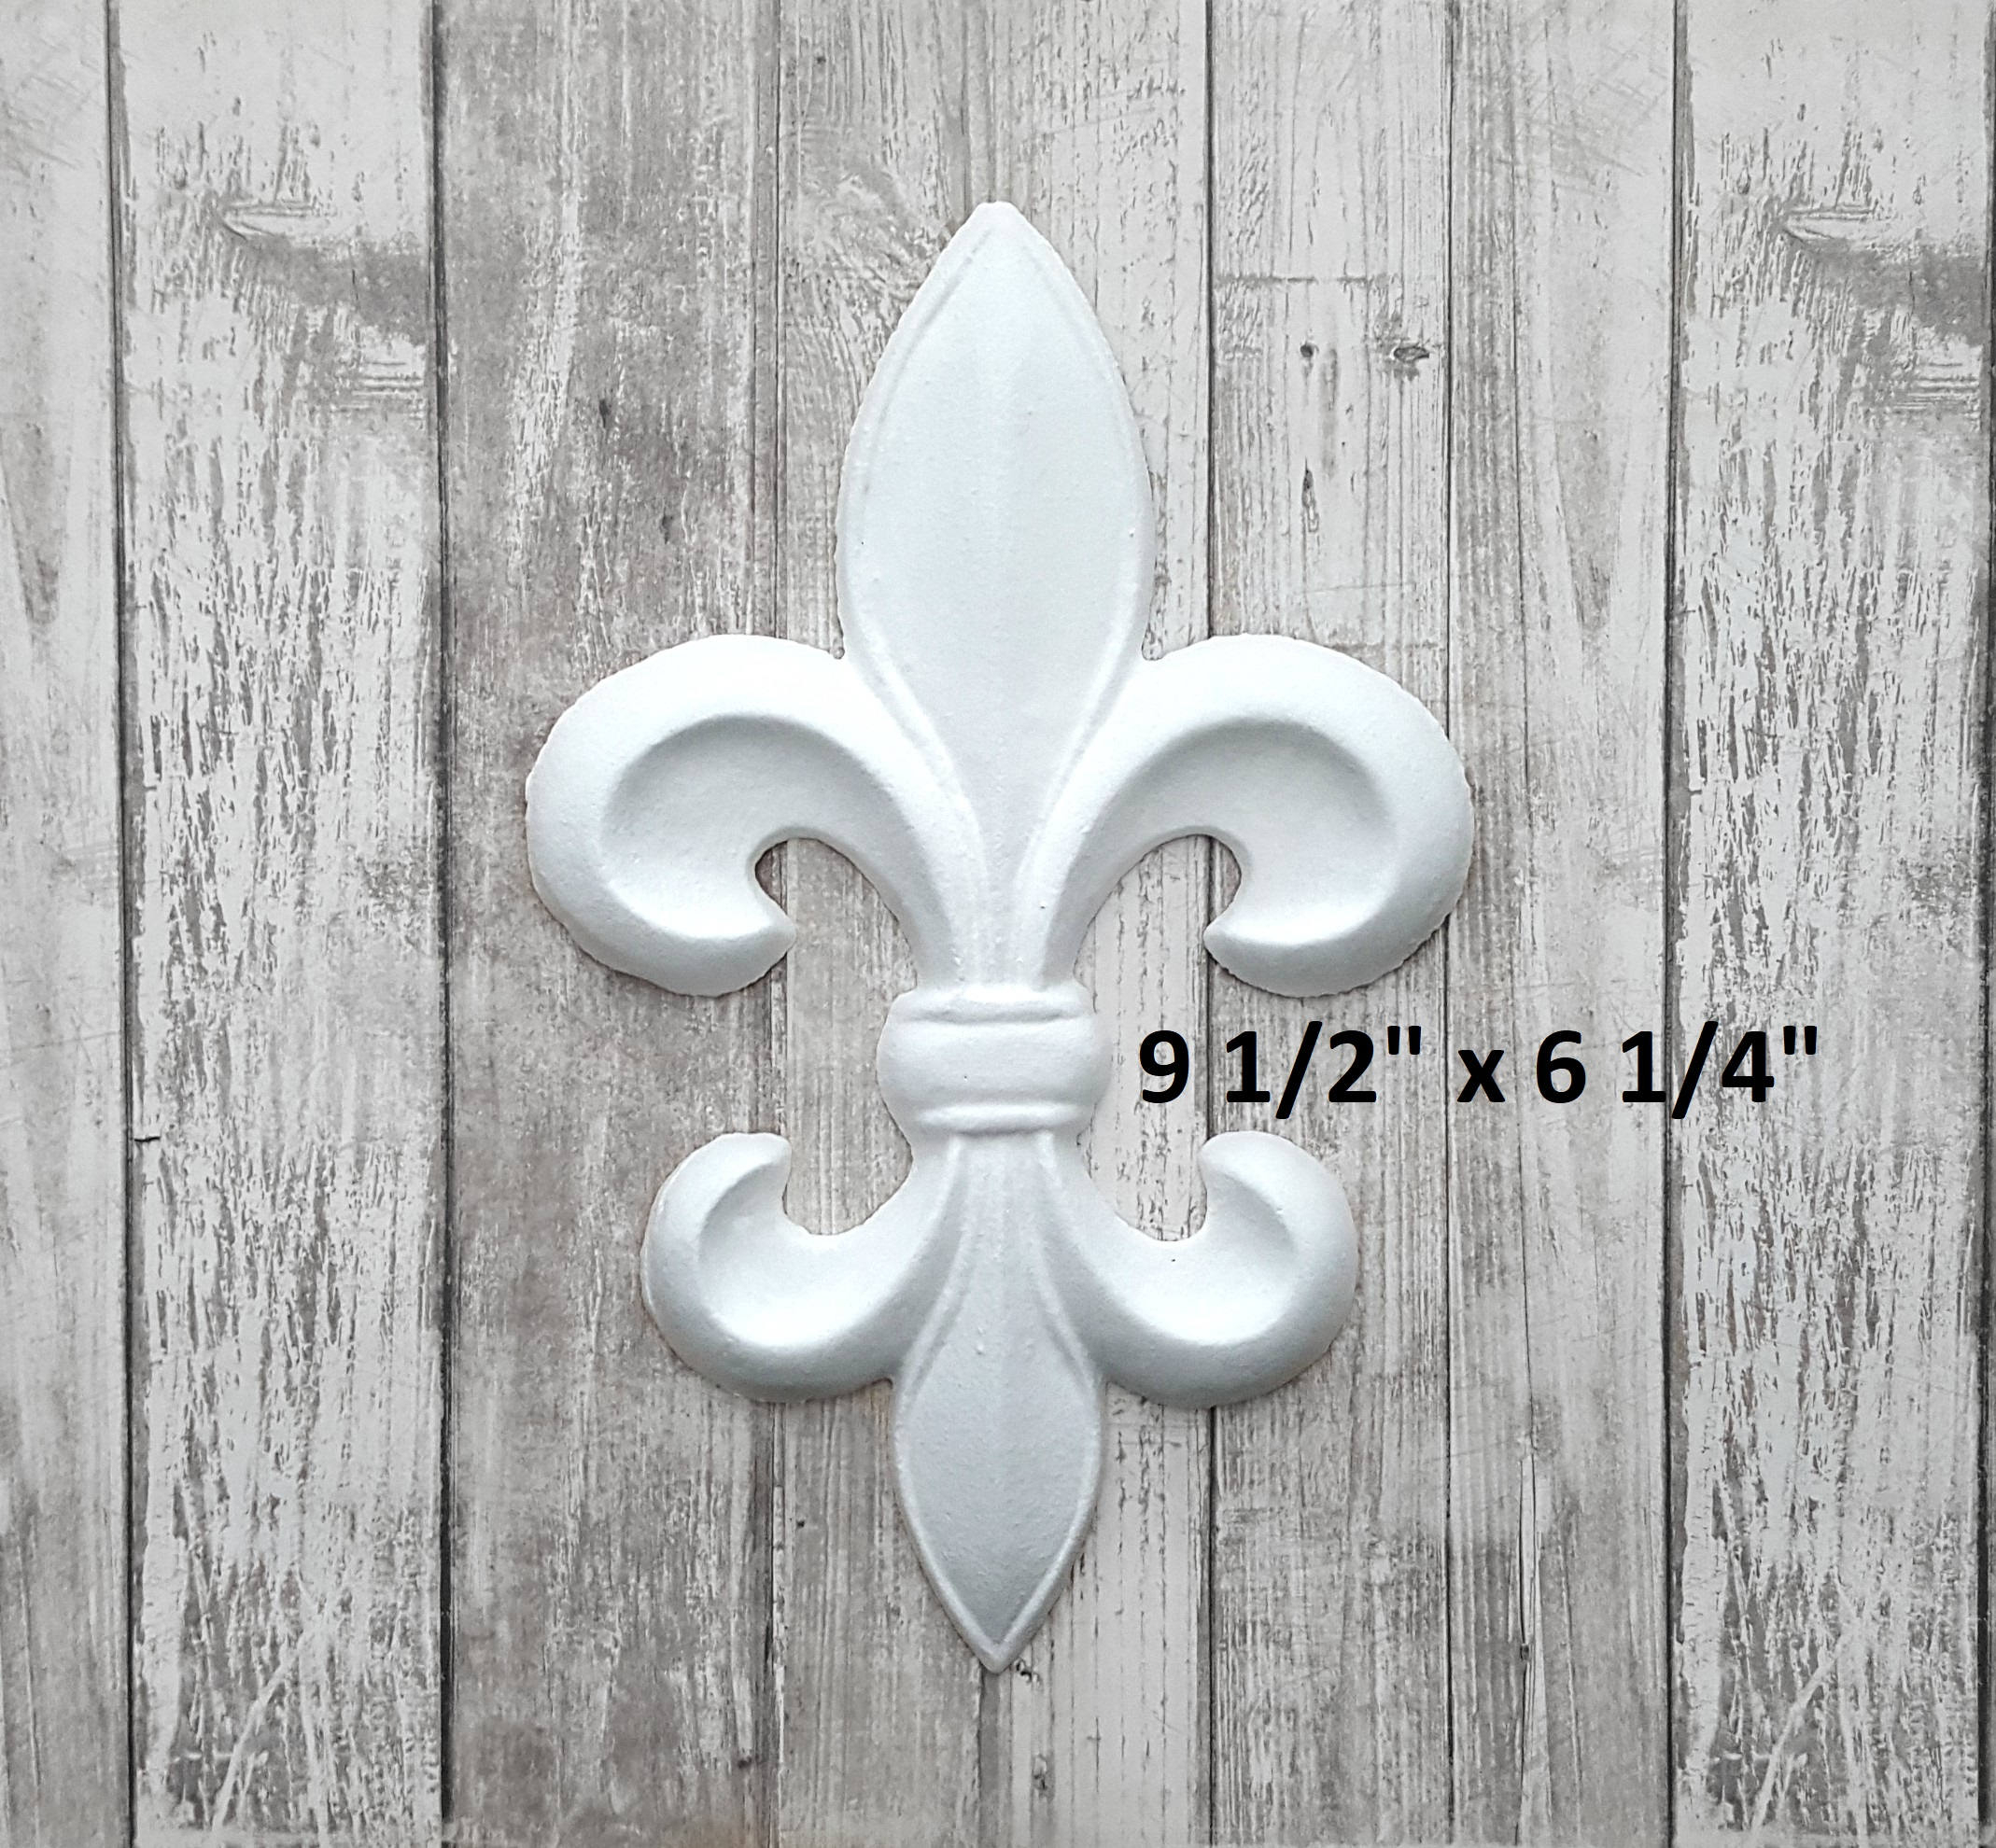 Fleur De Lis Wall Hanging, Metal Fleur De Lis, Paris Decor, French Wall Decor, Gallery Wall Decor, French Country, Any Color Regarding 2 Piece Metal Wall Decor Sets By Fleur De Lis Living (View 16 of 30)